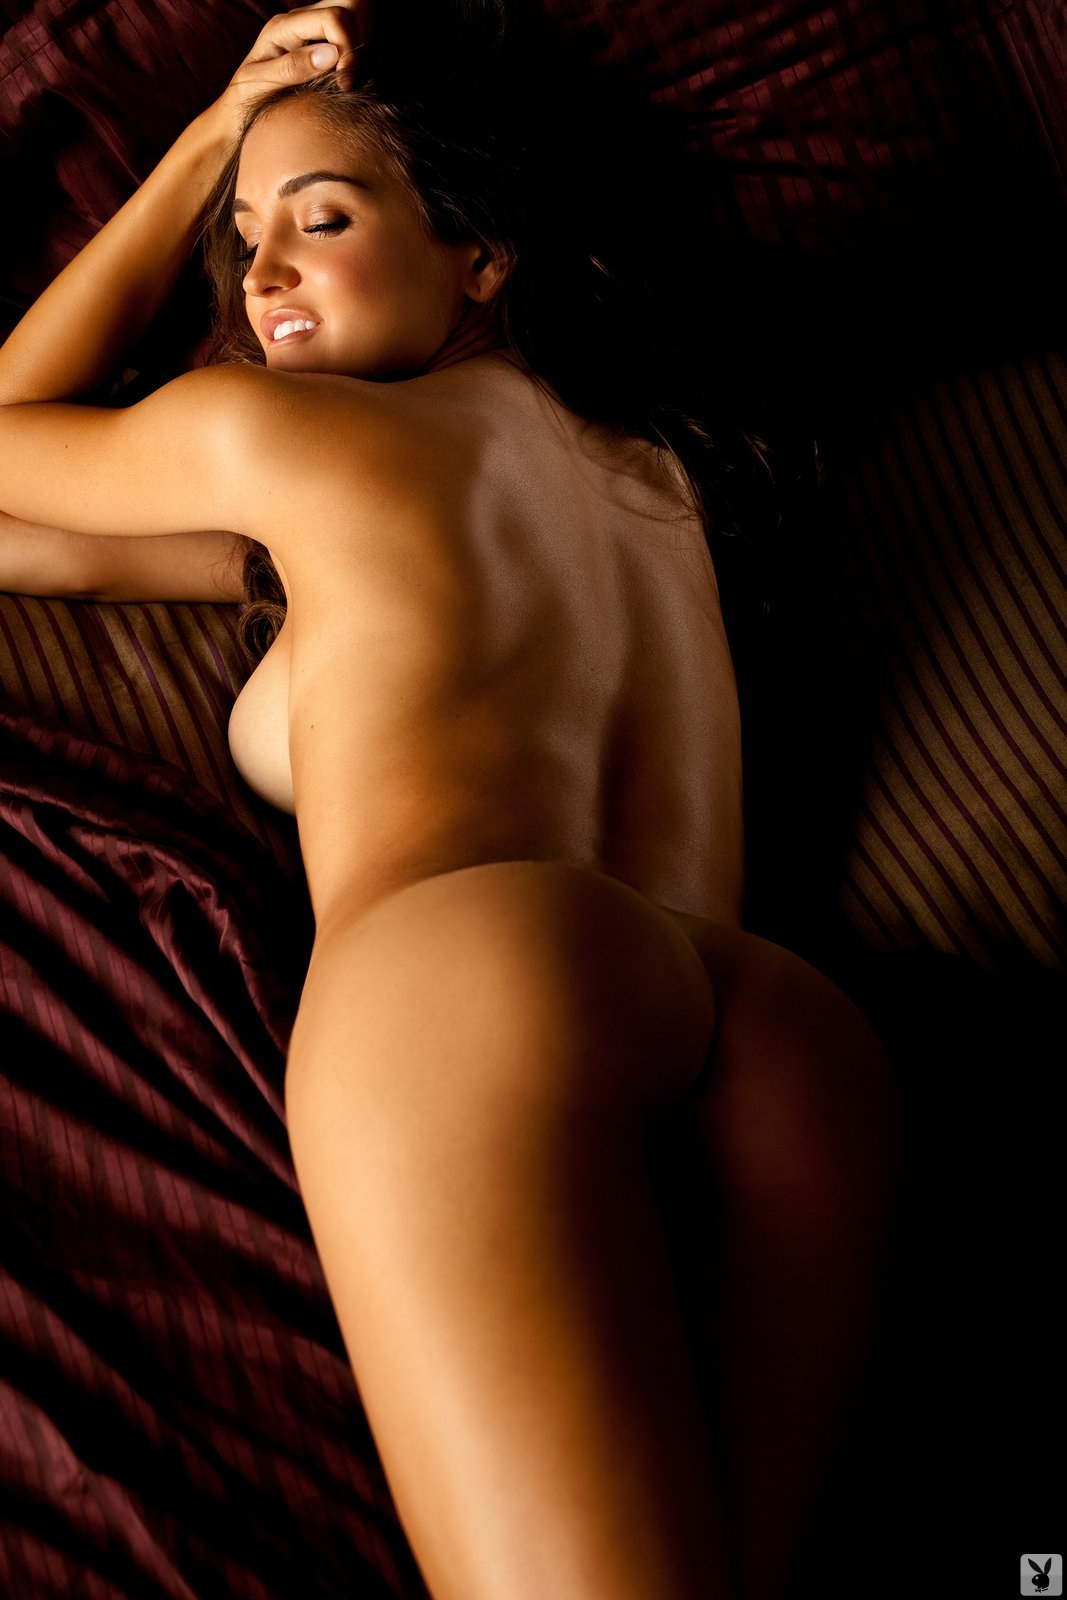 from Yosef nude playmate pic hq